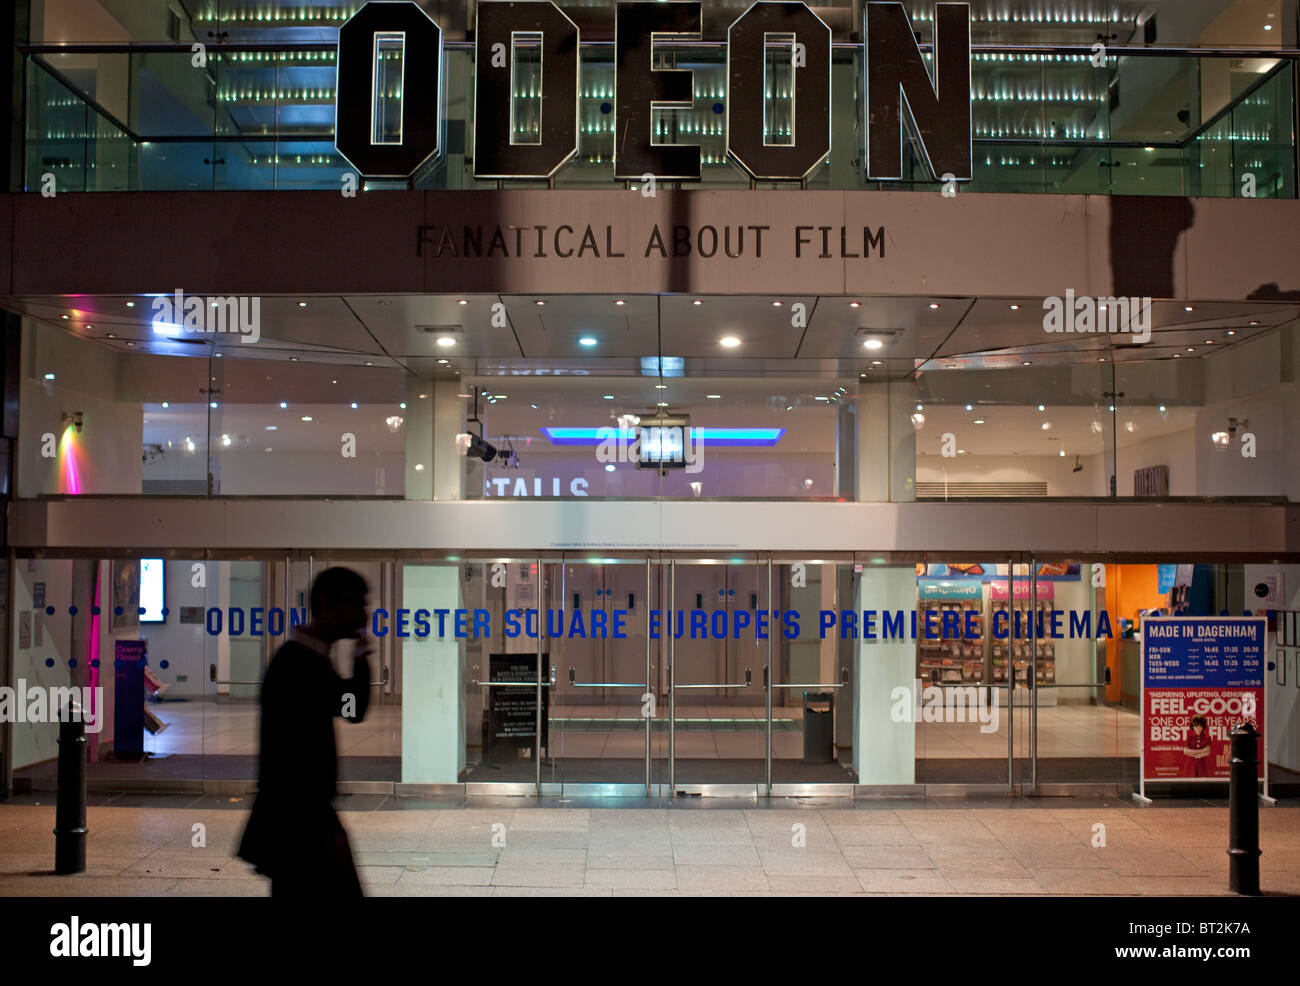 Odeon cinema, Leicester Square, London - Stock Image